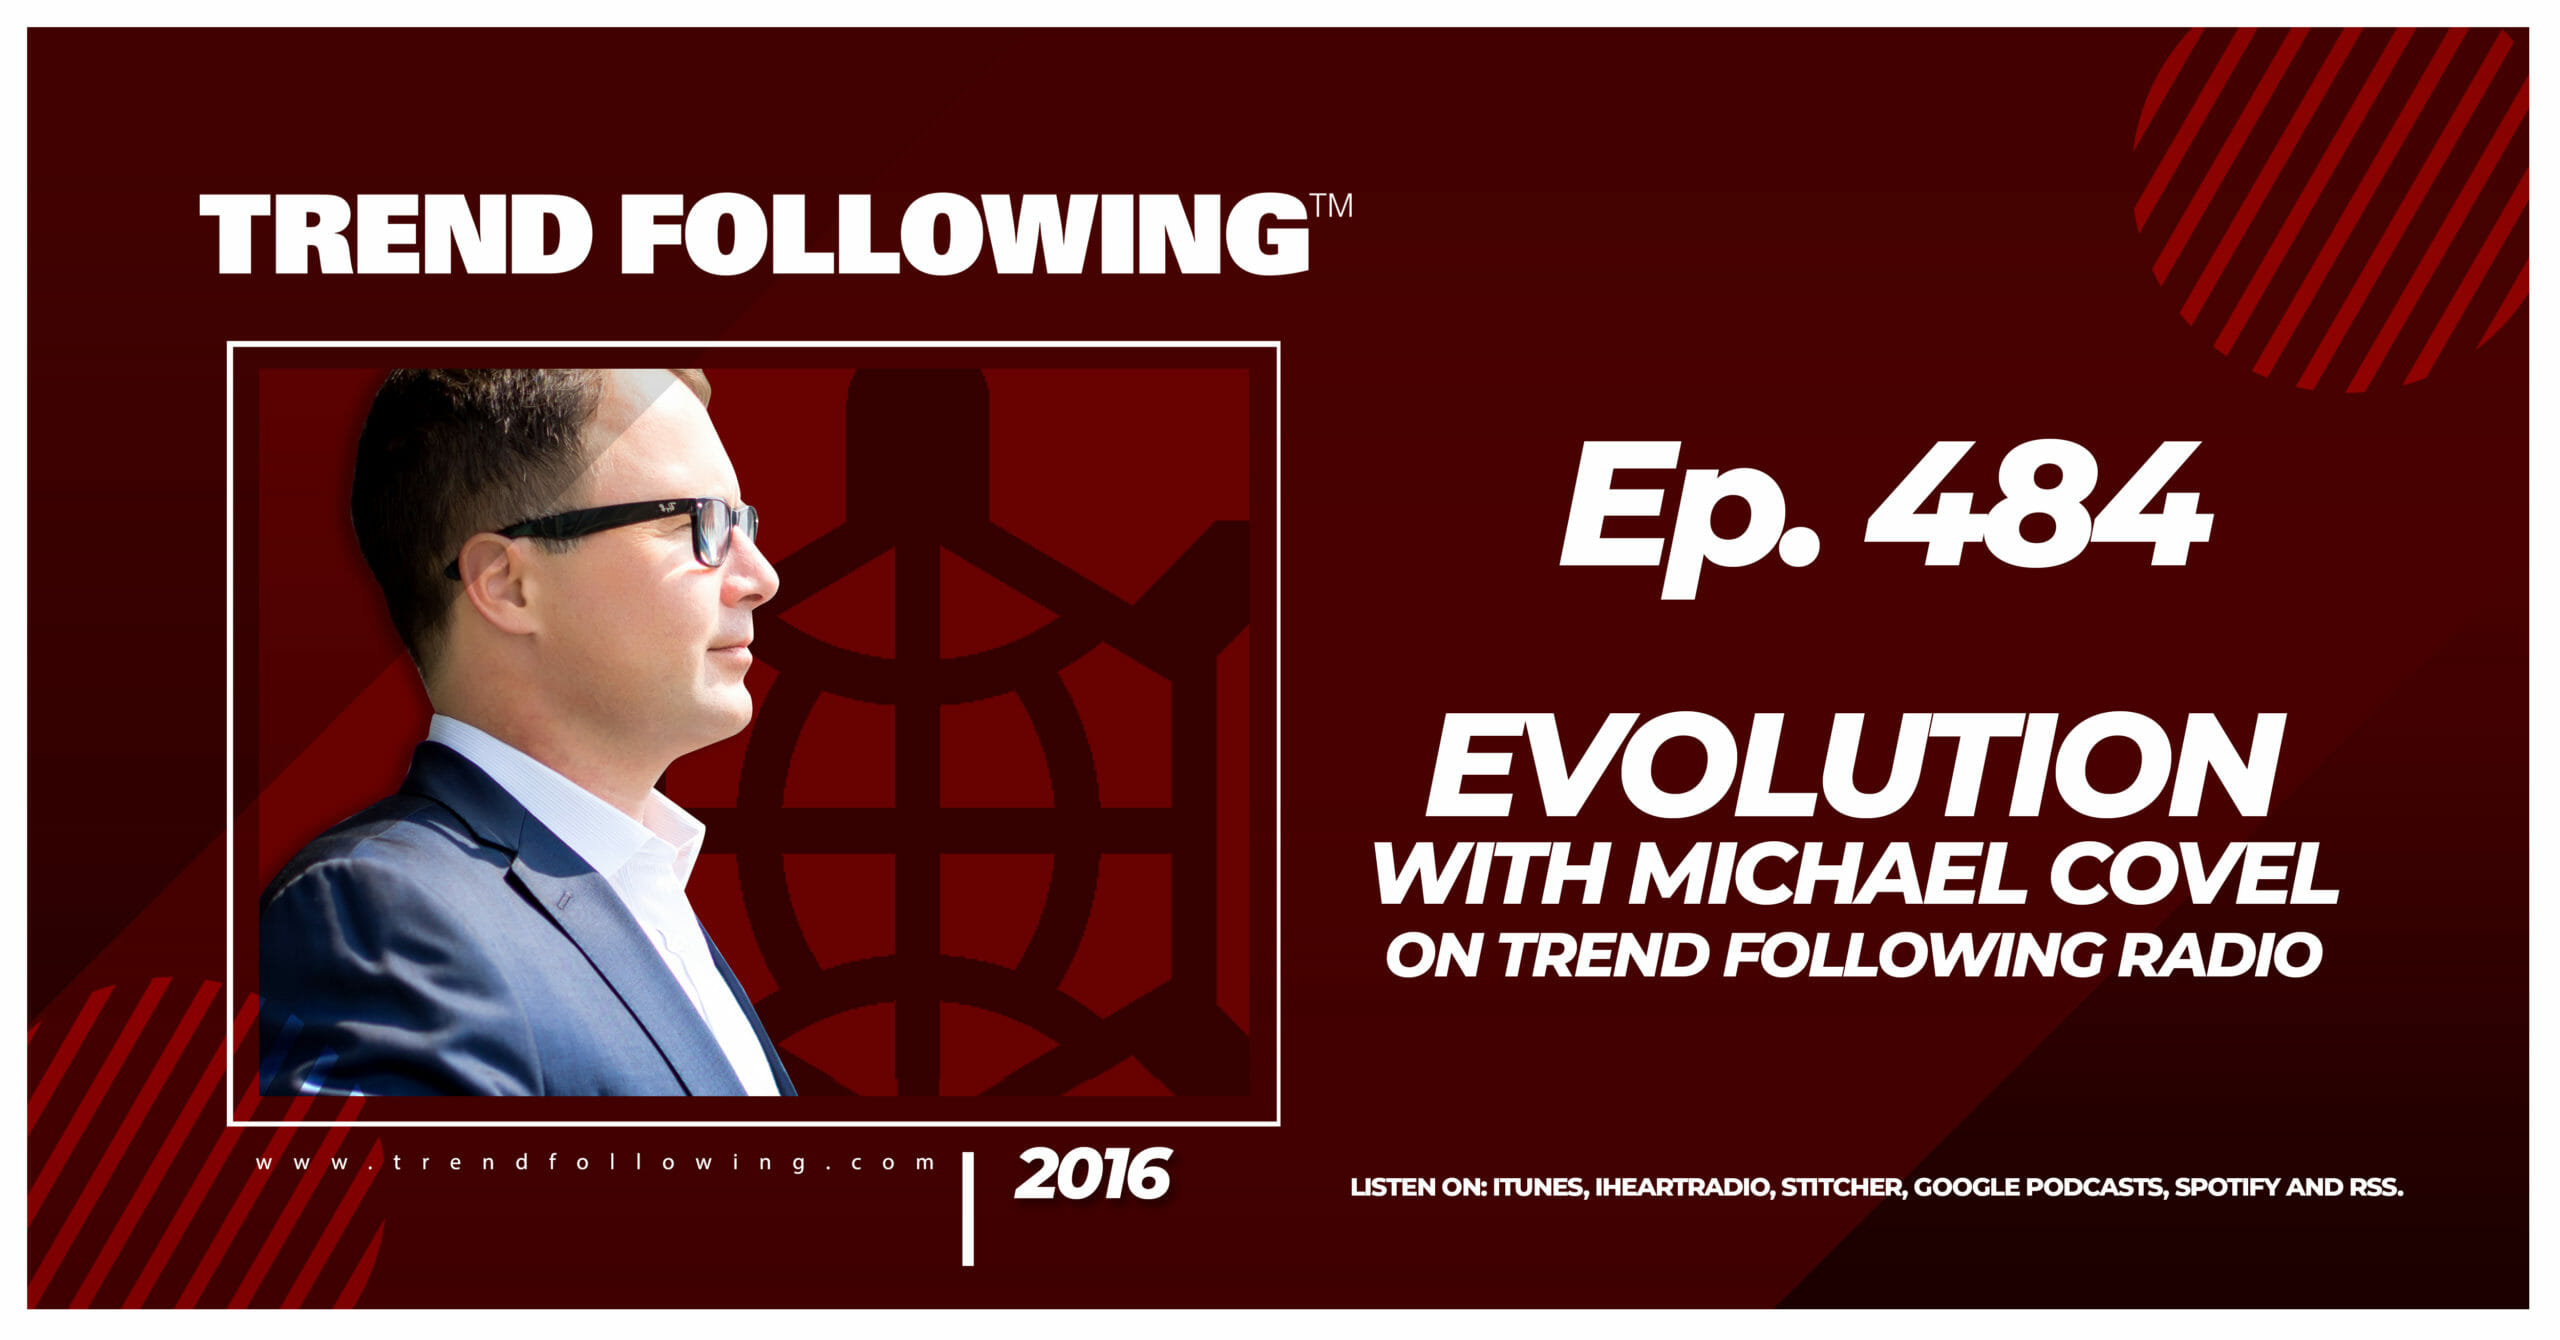 Evolution with Michael Covel on Trend Following Radio